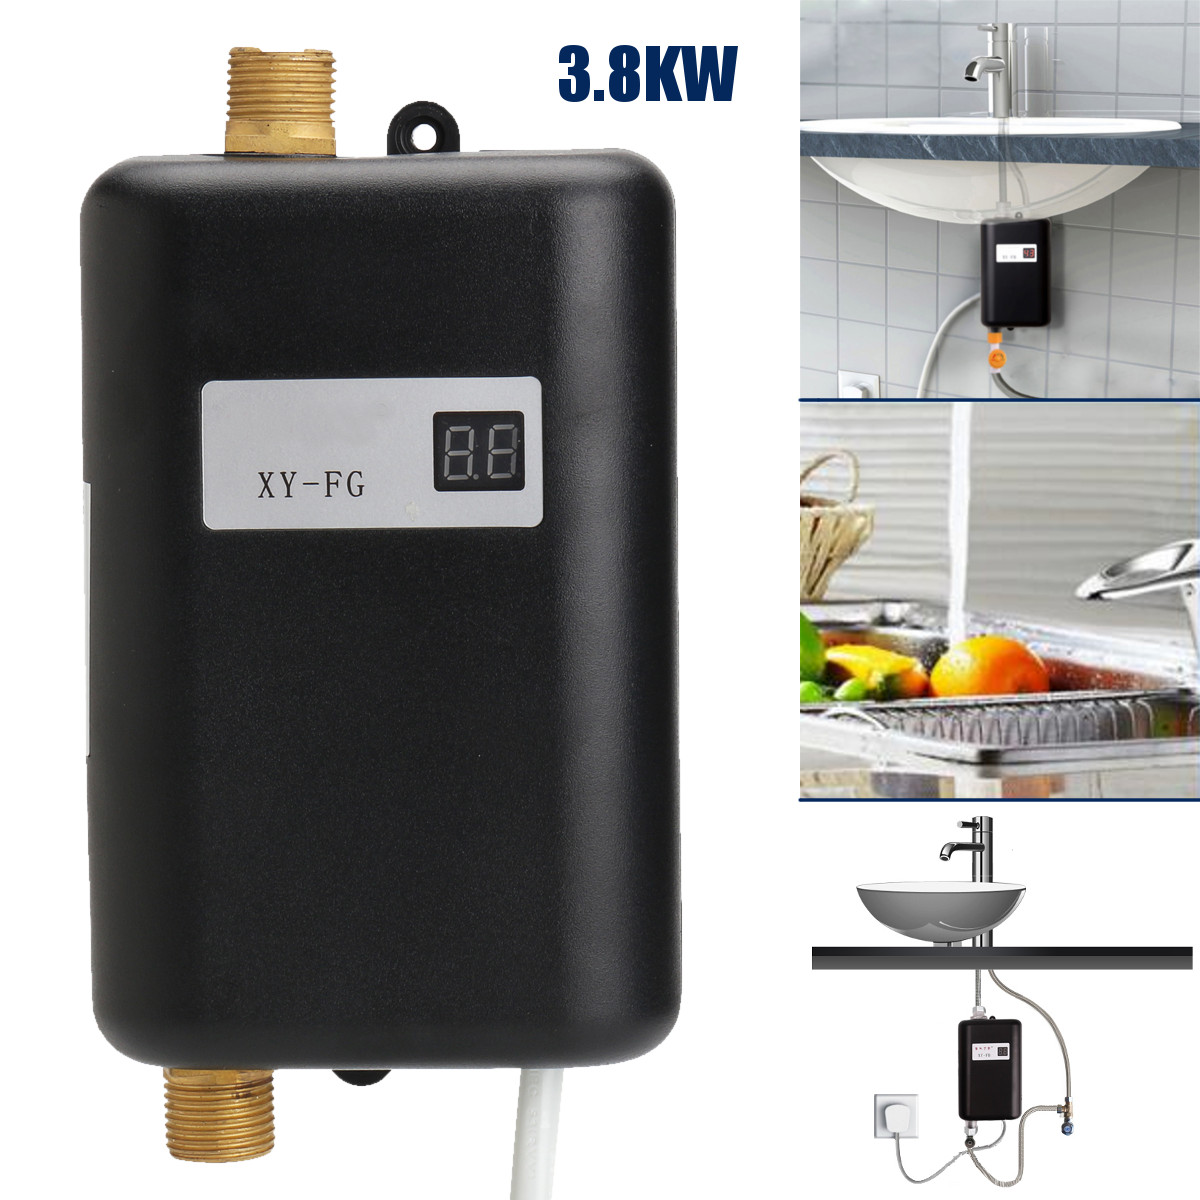 3800W Electric Water Heater Instant Tankless Water Heater220V 3.8KW Temperature Display Heating Shower Universal(China)